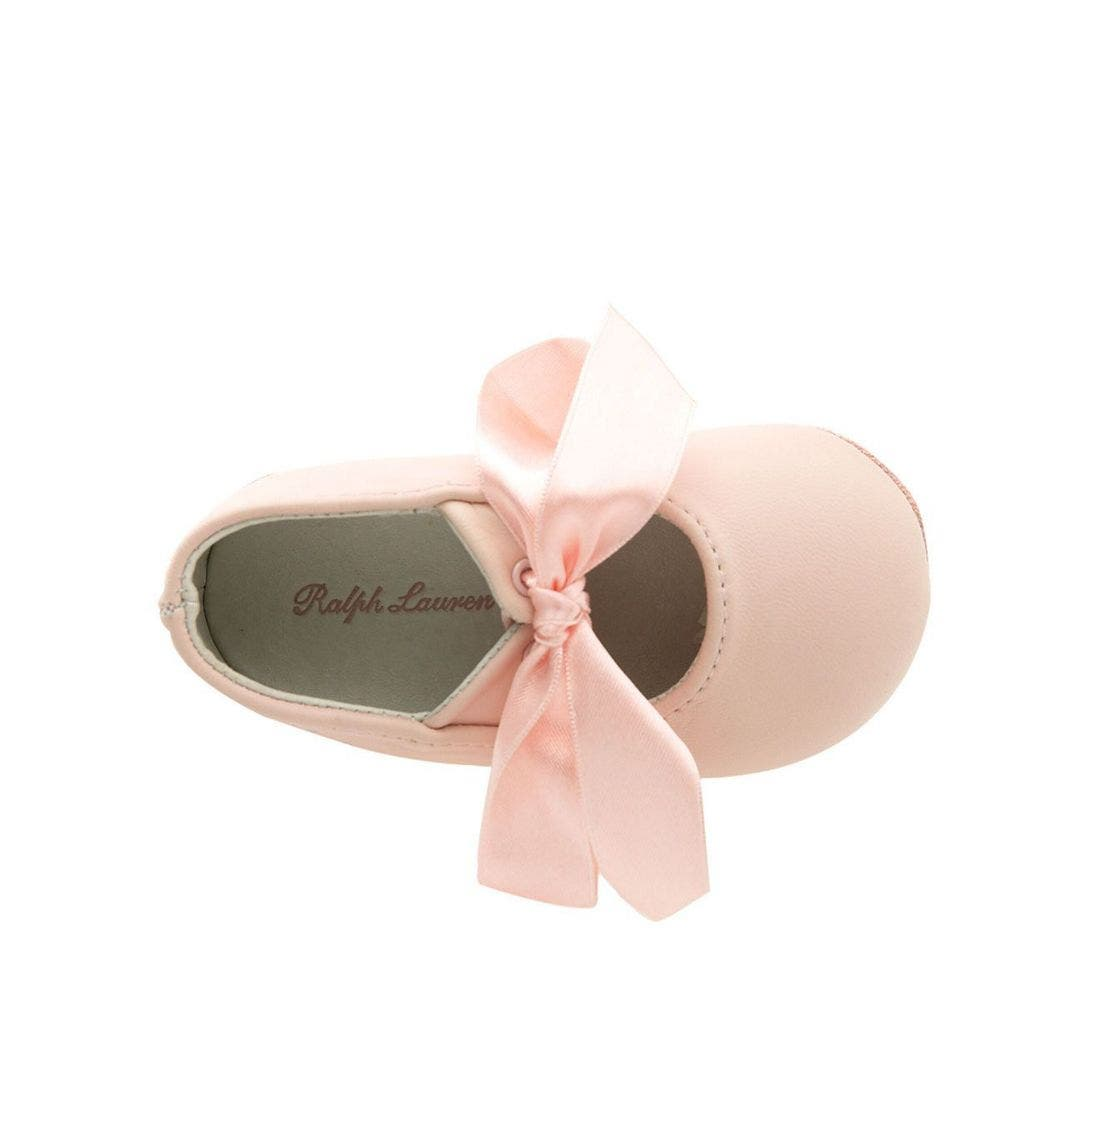 Layette 'Briley' Shoe,                             Alternate thumbnail 3, color,                             Pink Lambskin